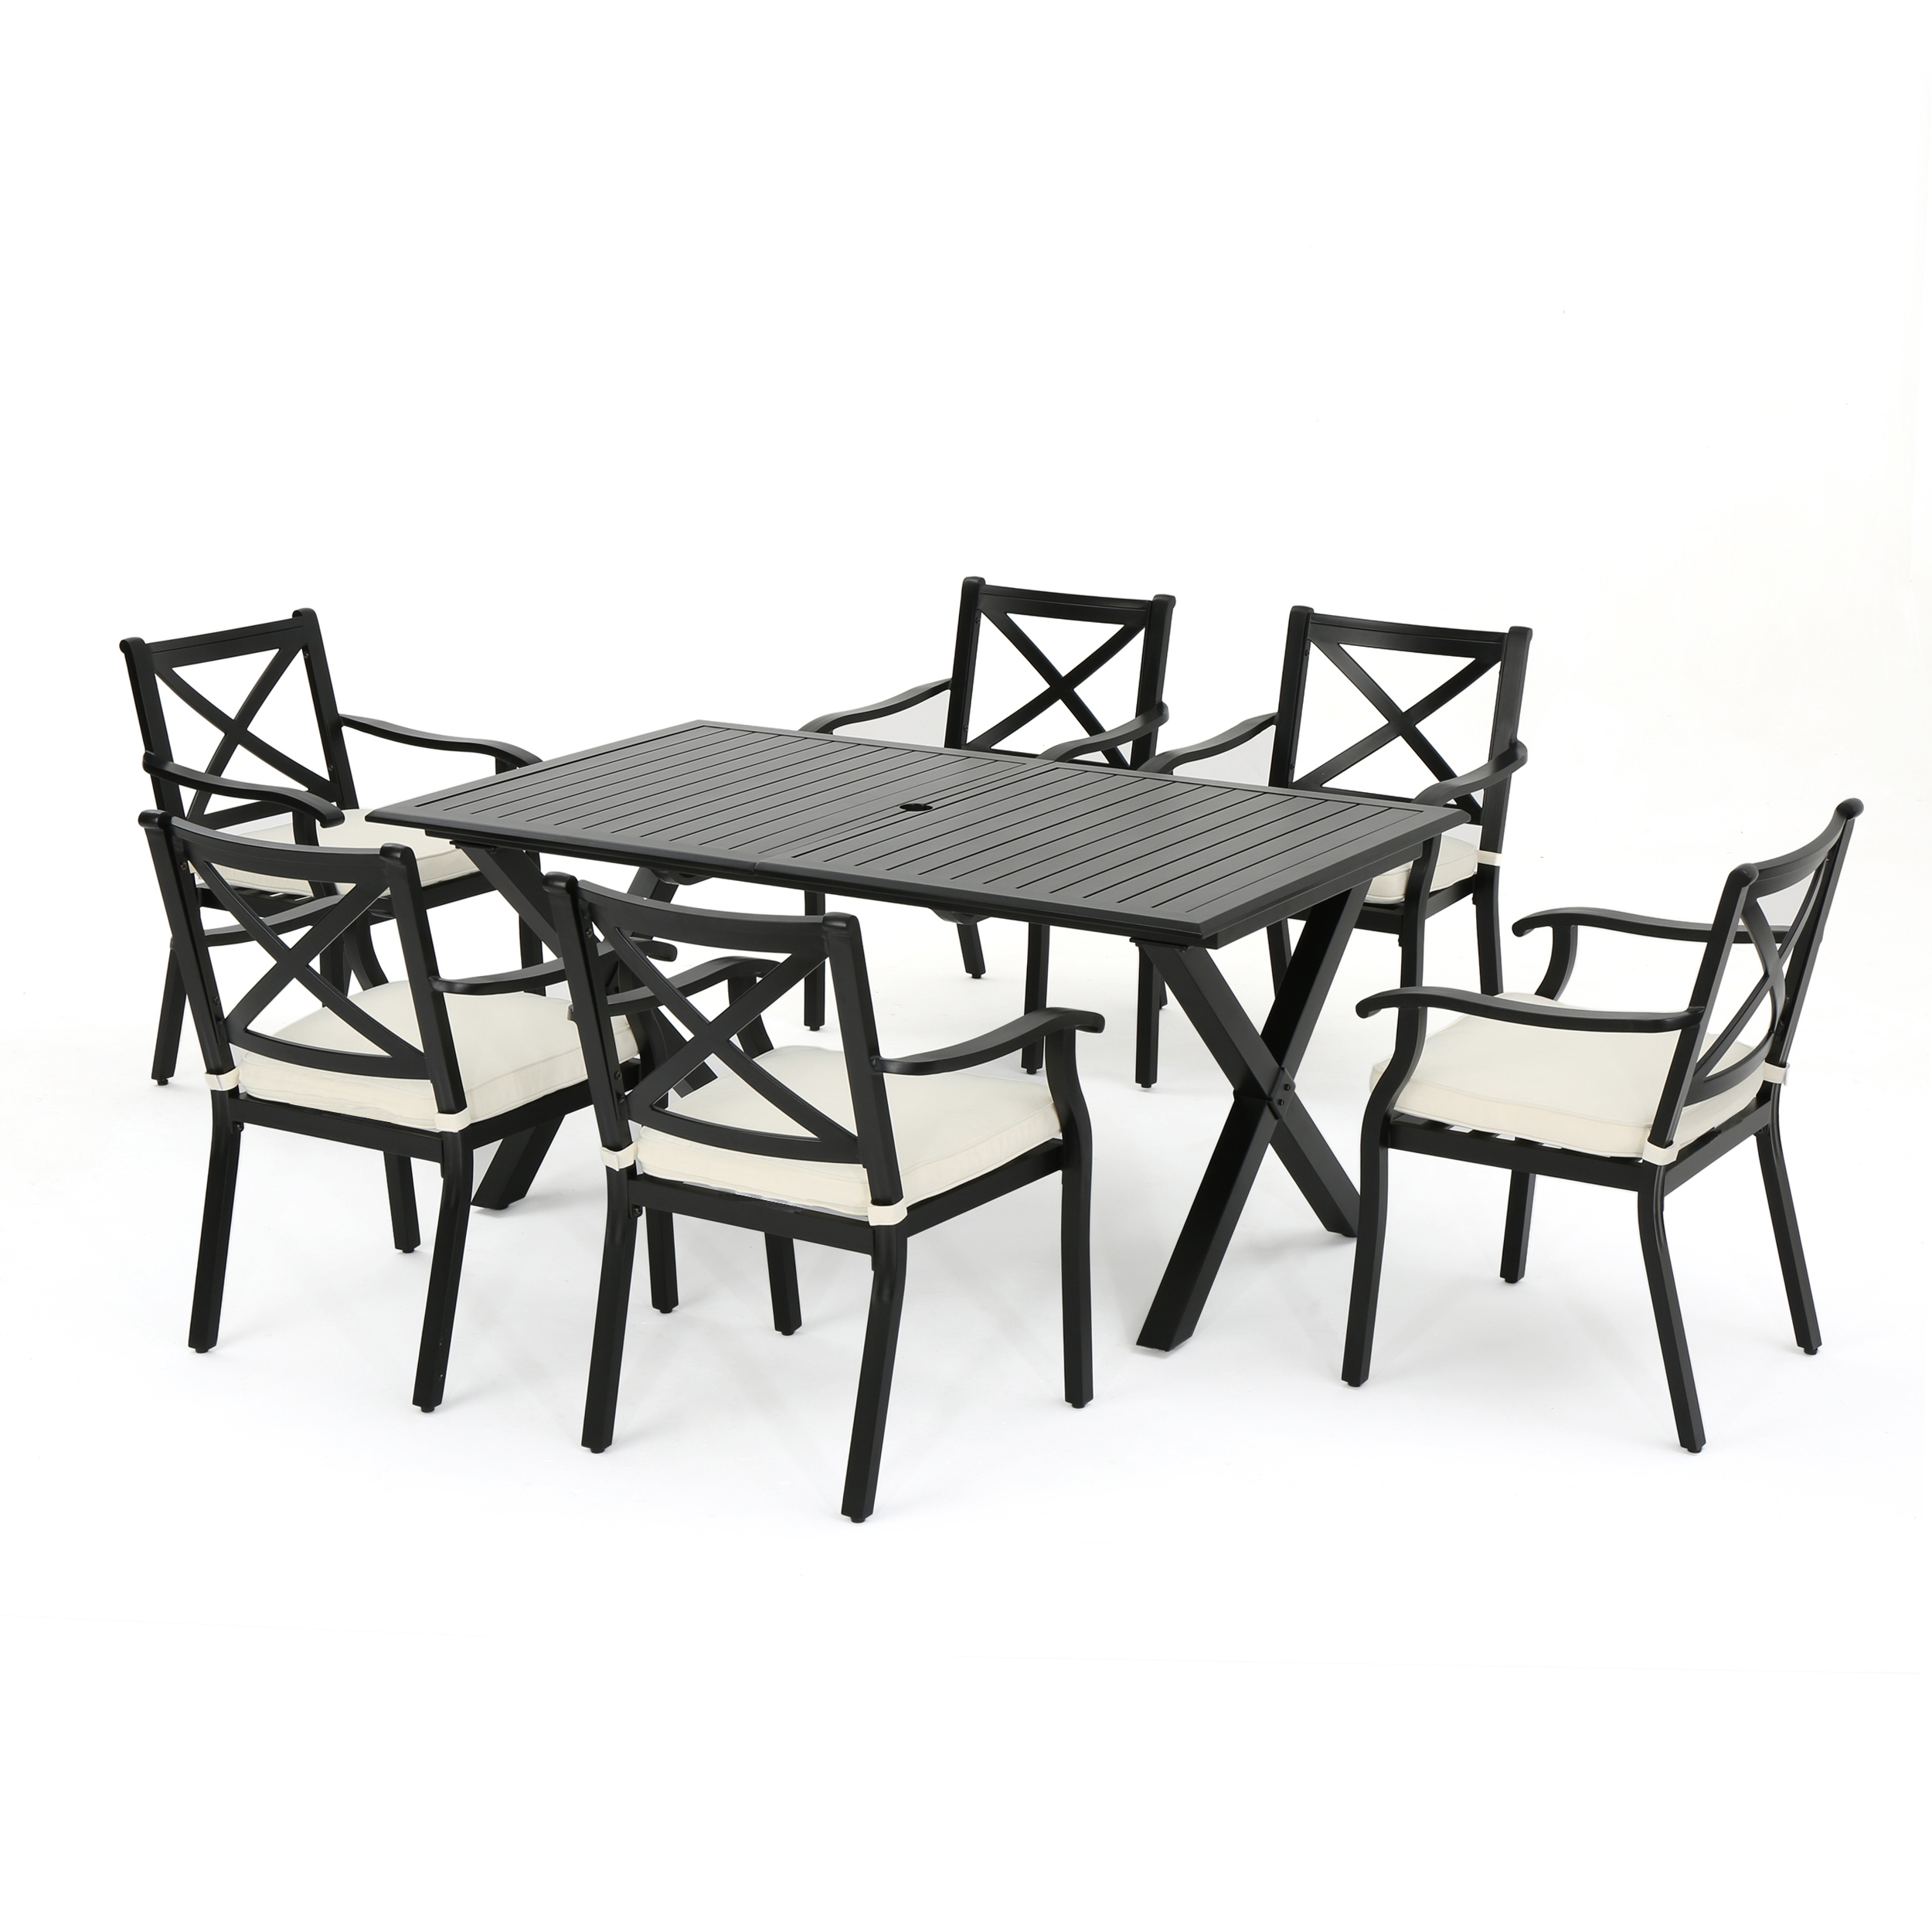 Eowyn Outdoor 7 Piece Cast Aluminum Dining Set with Ivory Water Resistant Cushions, Black